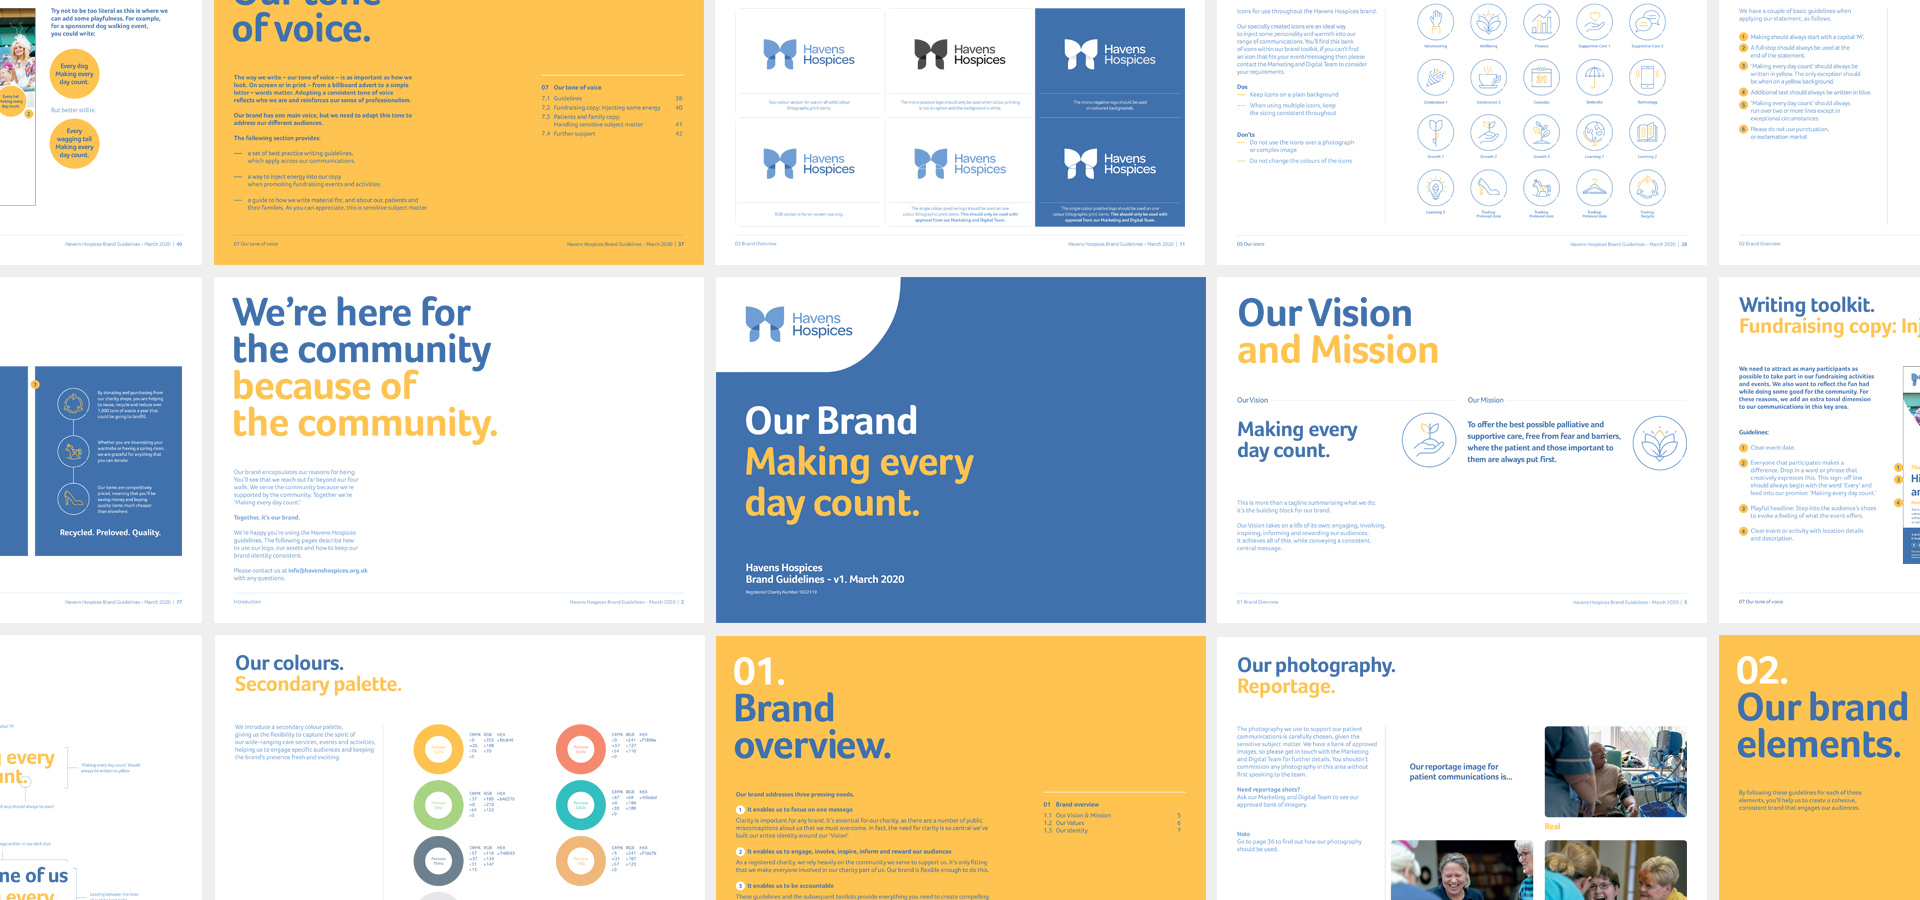 Havens Hospices brand charity guidelines